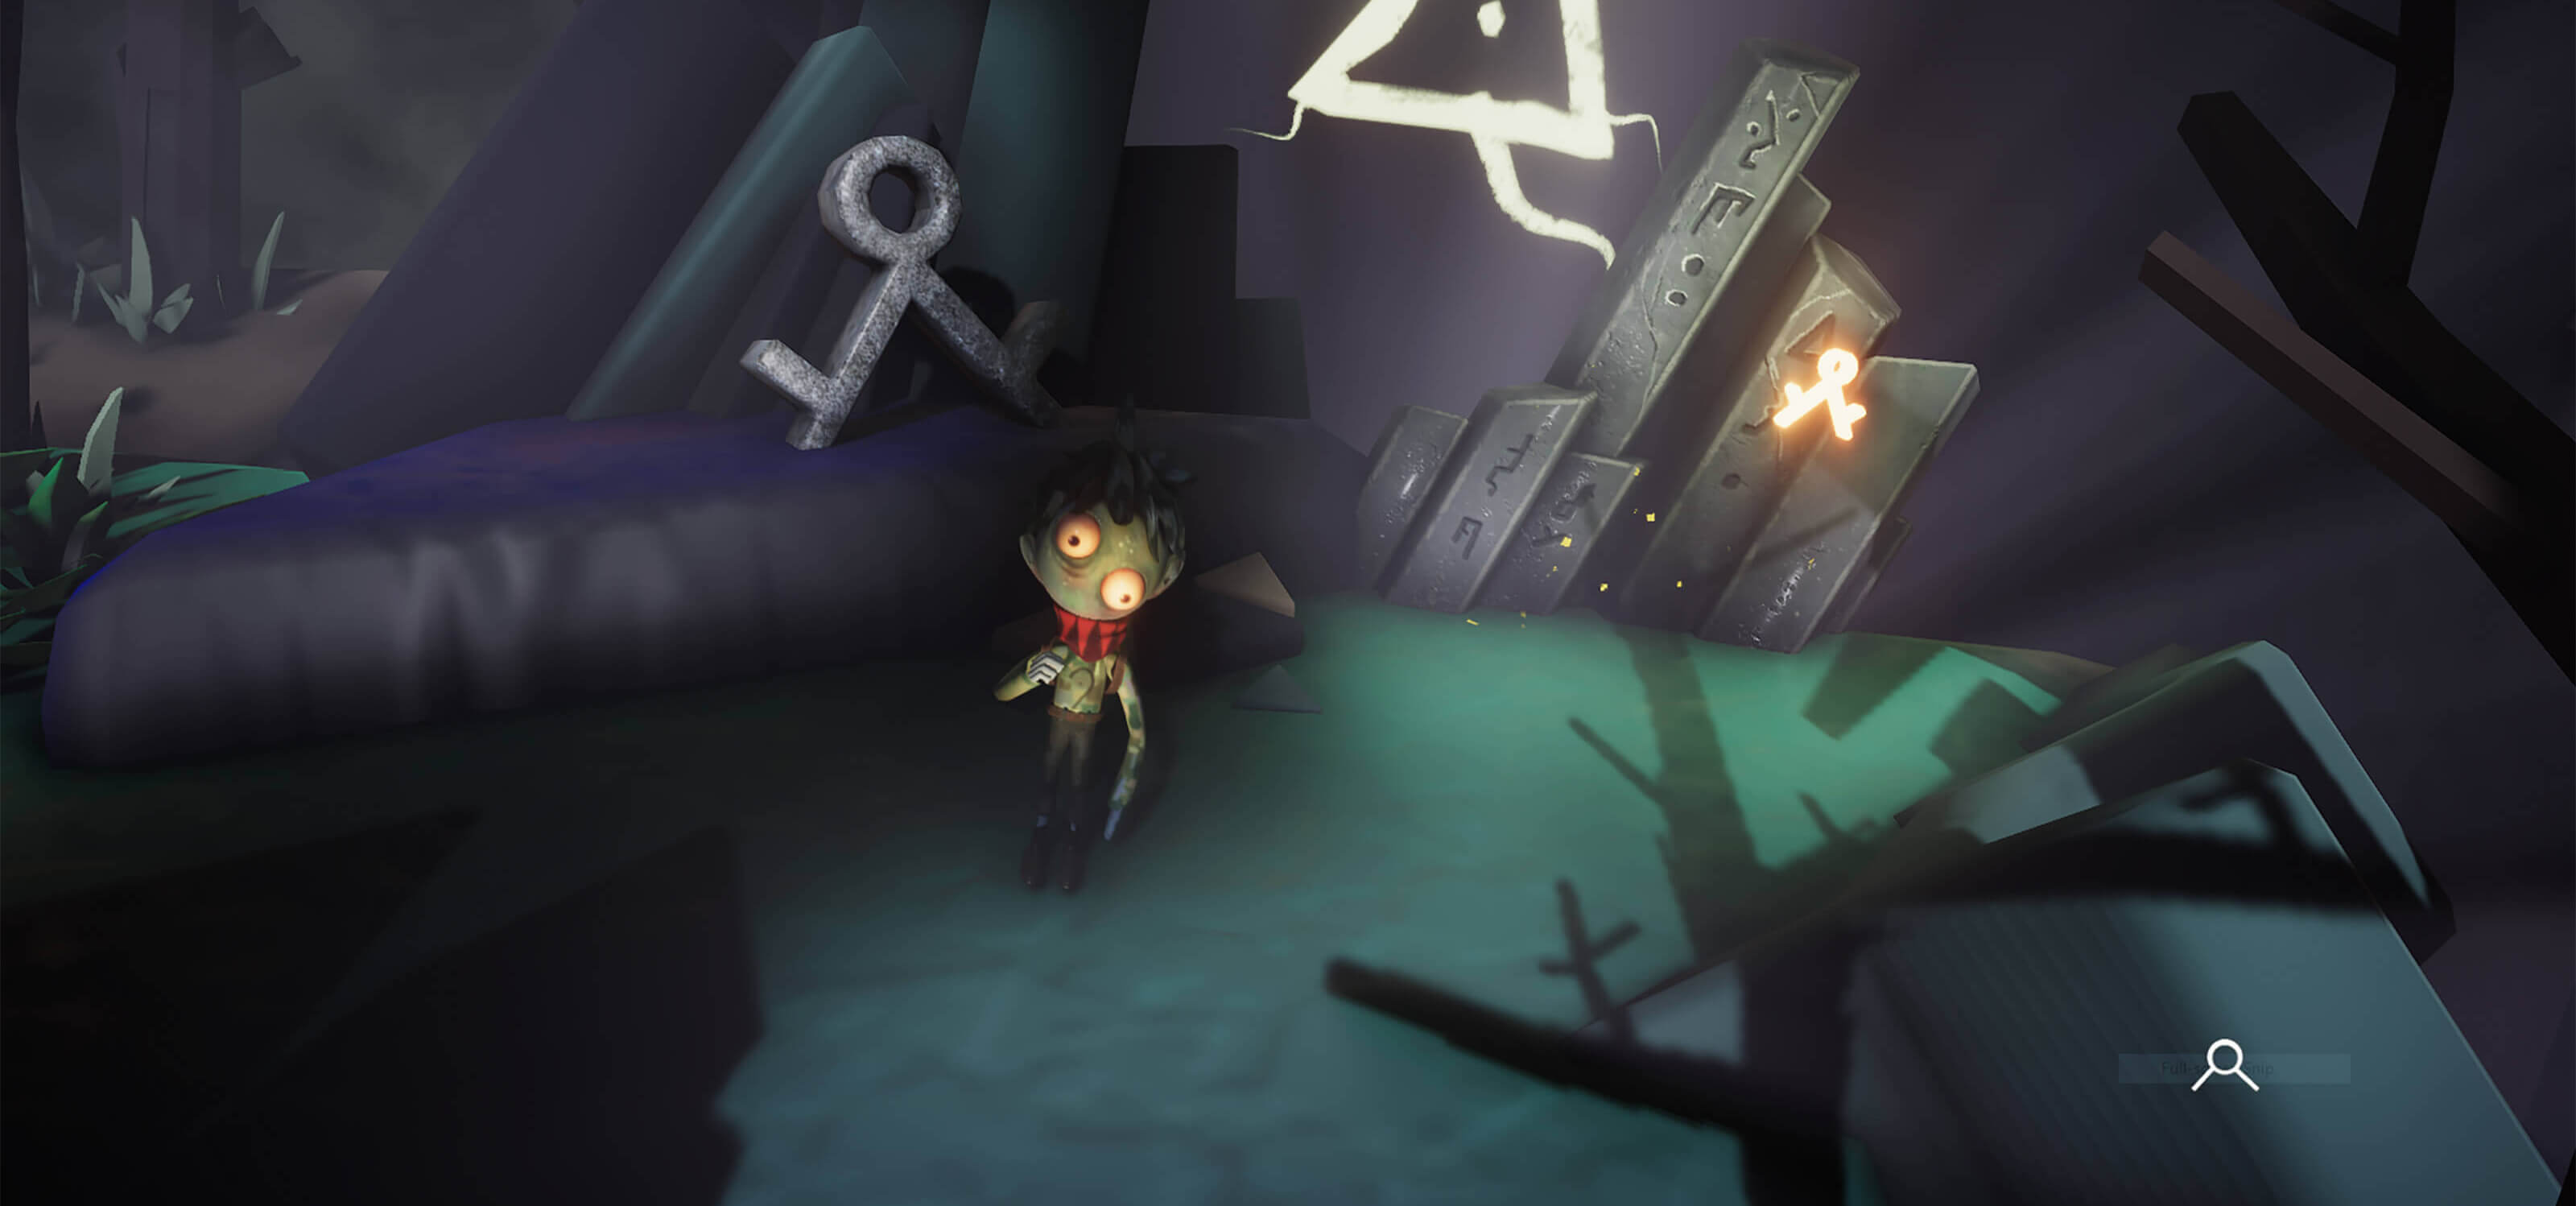 A blue skinned boy with lopsided eyes, stands next to runic shapes in an abstract forest.